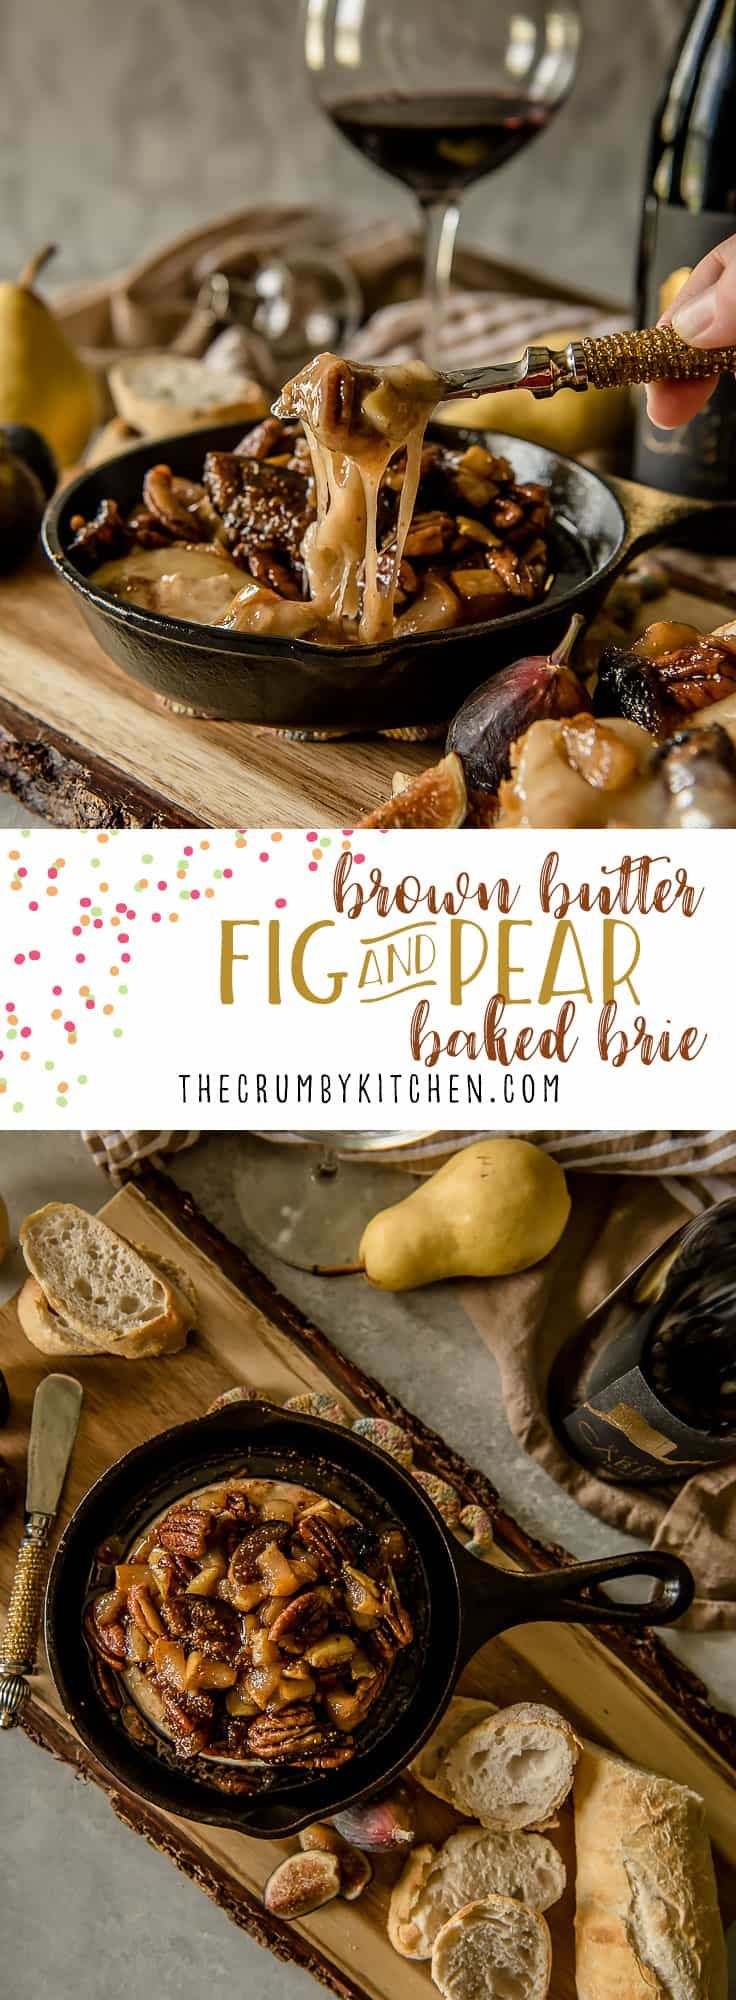 This creamyBrown Butter Fig & Pear Baked Brieis both elegant and comforting, and is sure to be the hit of any holiday or cold weather party! Figs, pears, pecans, and a little sweetness bring out the best in your favorite soft cheese. via @crumbykitchen